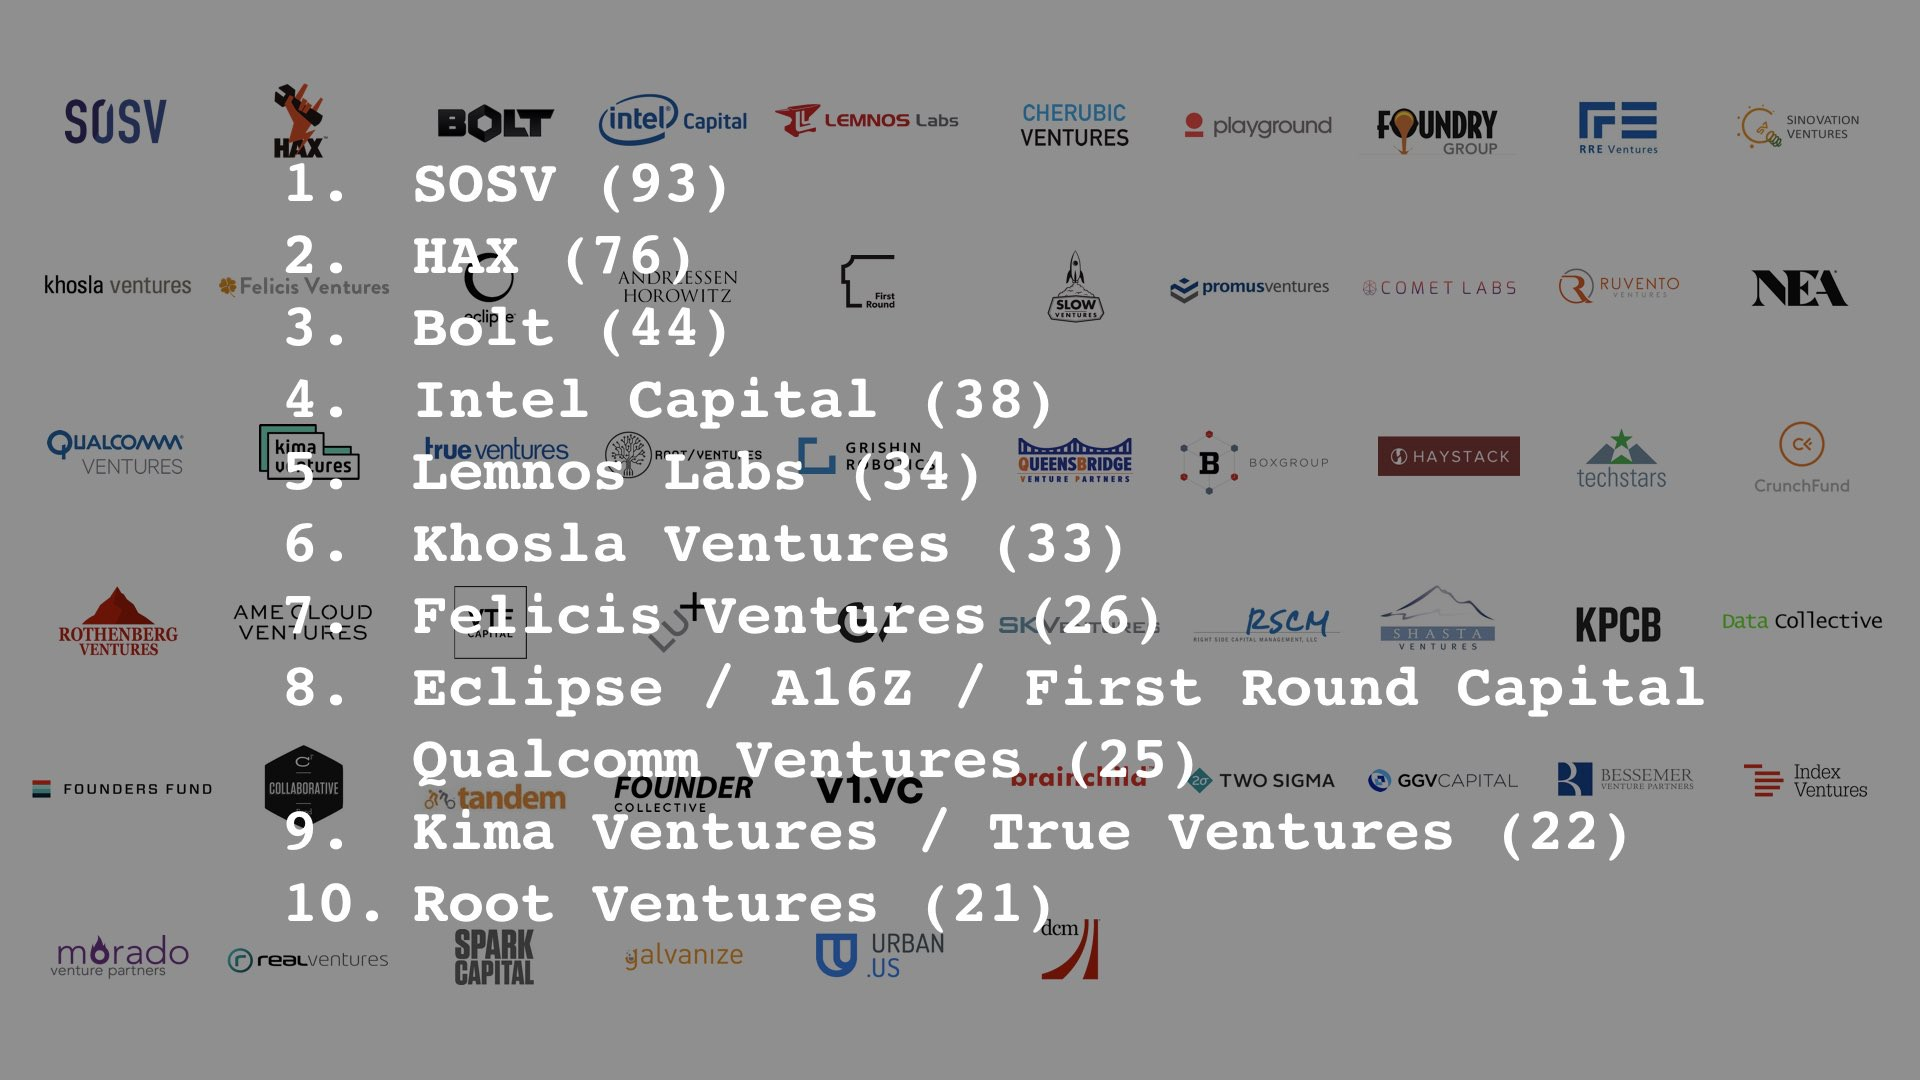 SOSV And HAX Top Global Hardware VCs - SOSV: Inspiration from